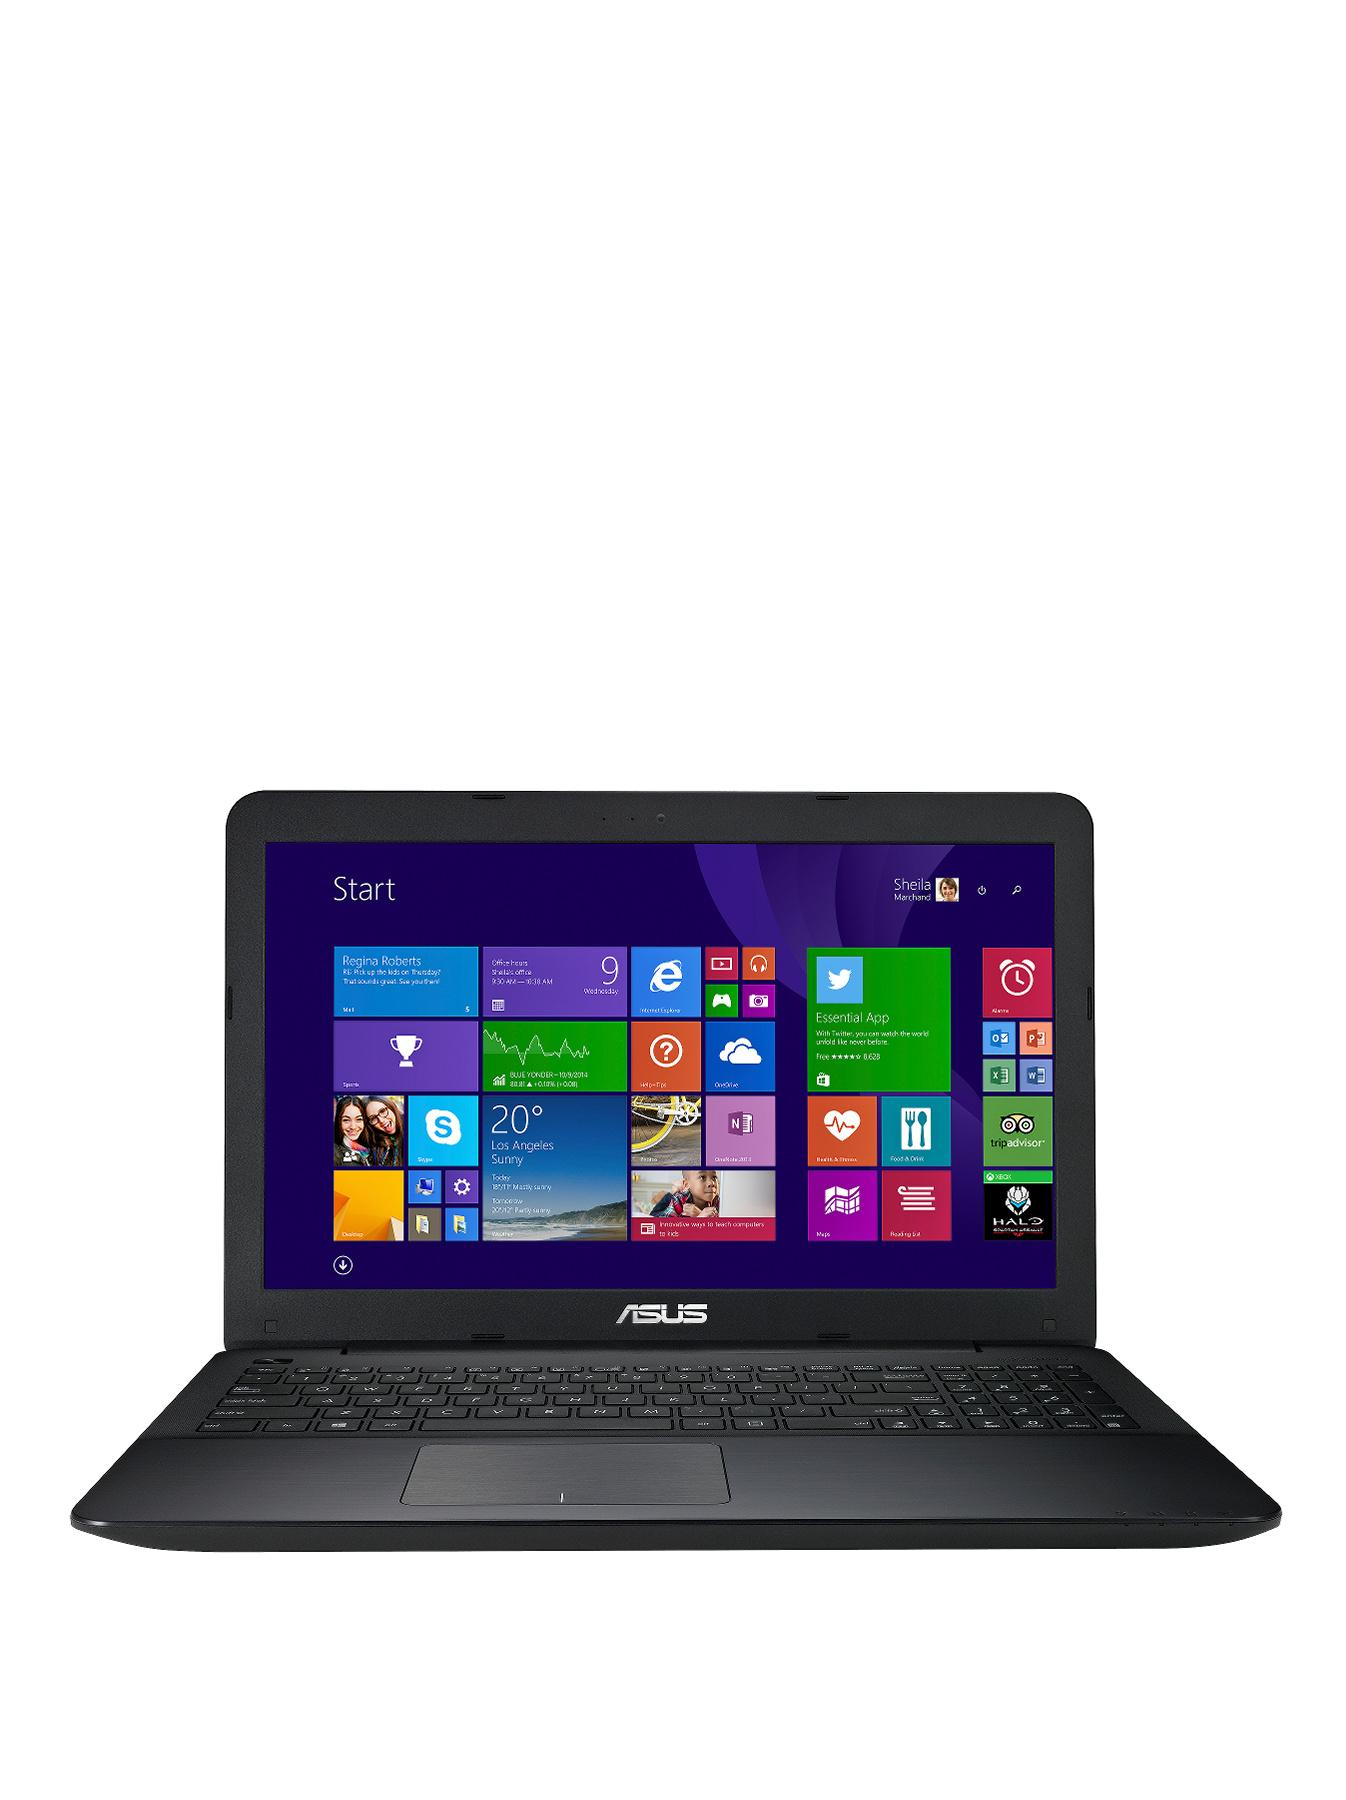 Asus X555LA Intel Core i3 Processor, 4Gb RAM, 1Tb Hard Drive, Wi-Fi, 15.6 inch Laptop with Optional Microsoft Office 365 Personal - Blue